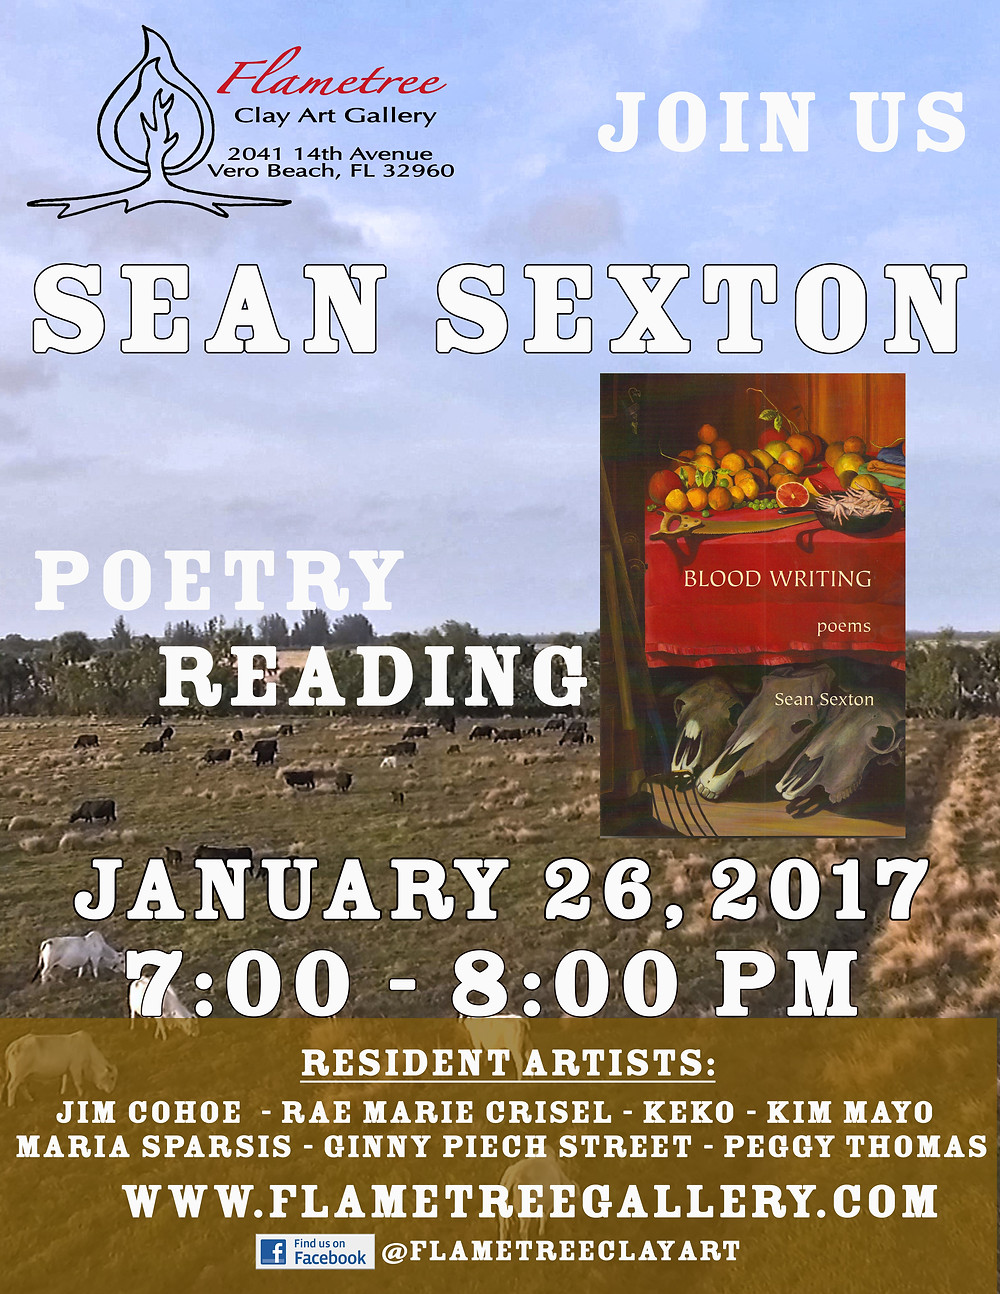 Join us January 26, 2017 for a poetry reading by Sean Sexton